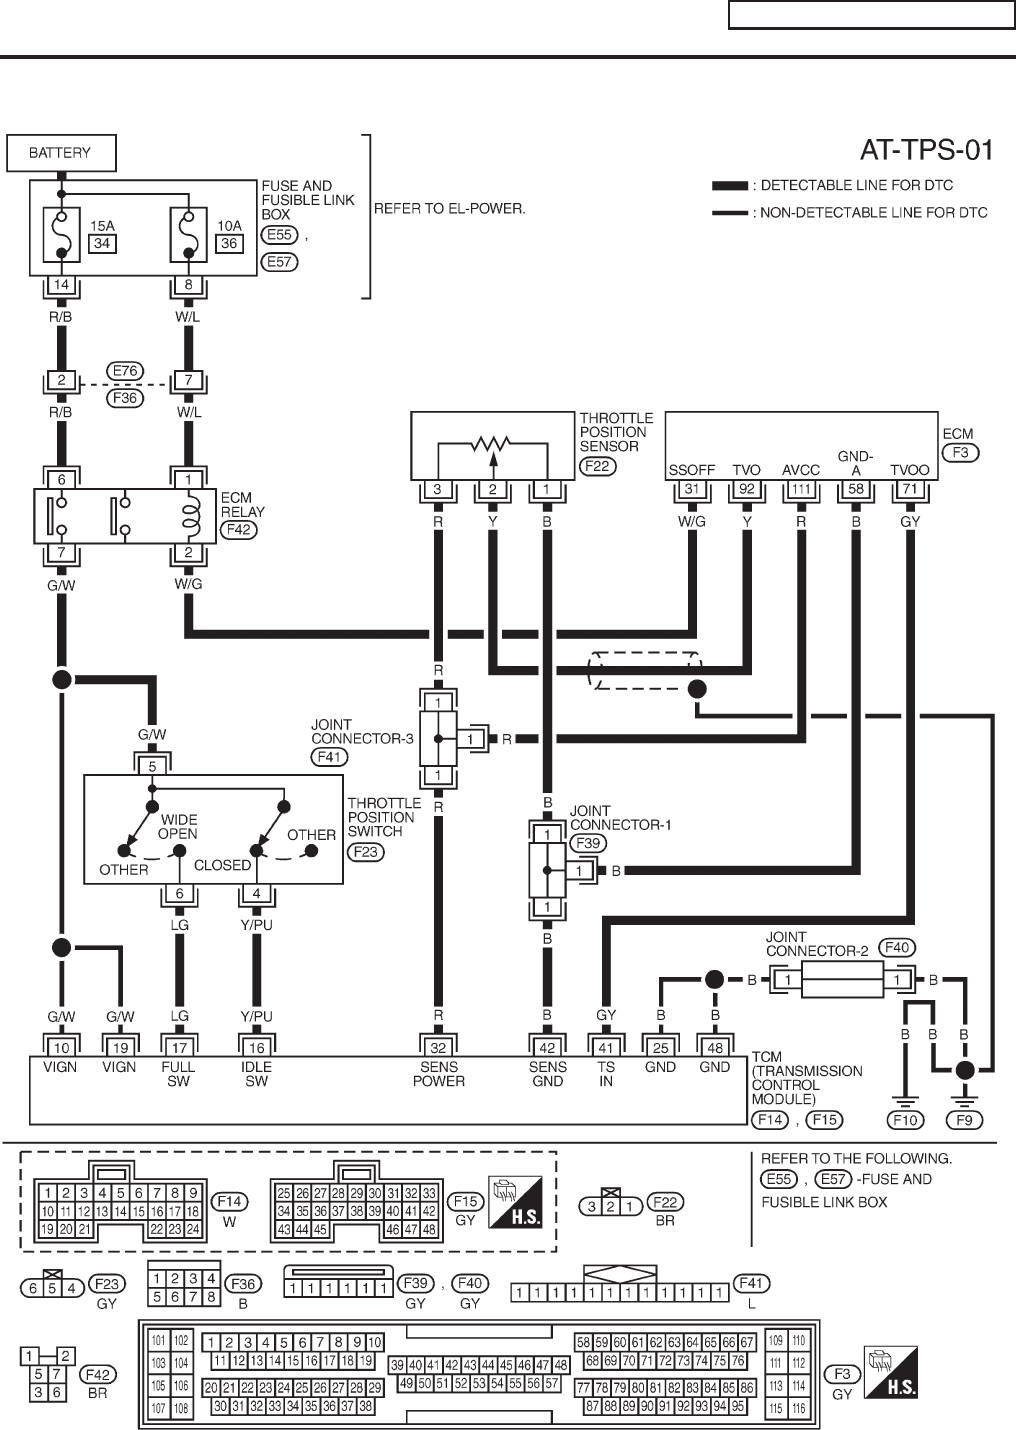 DIAGRAM] Wiring Diagram Nissan Almera FULL Version HD Quality Nissan Almera  - ORBITALDIAGRAMS.SAINTMIHIEL-TOURISME.FRSaintmihiel-tourisme.fr